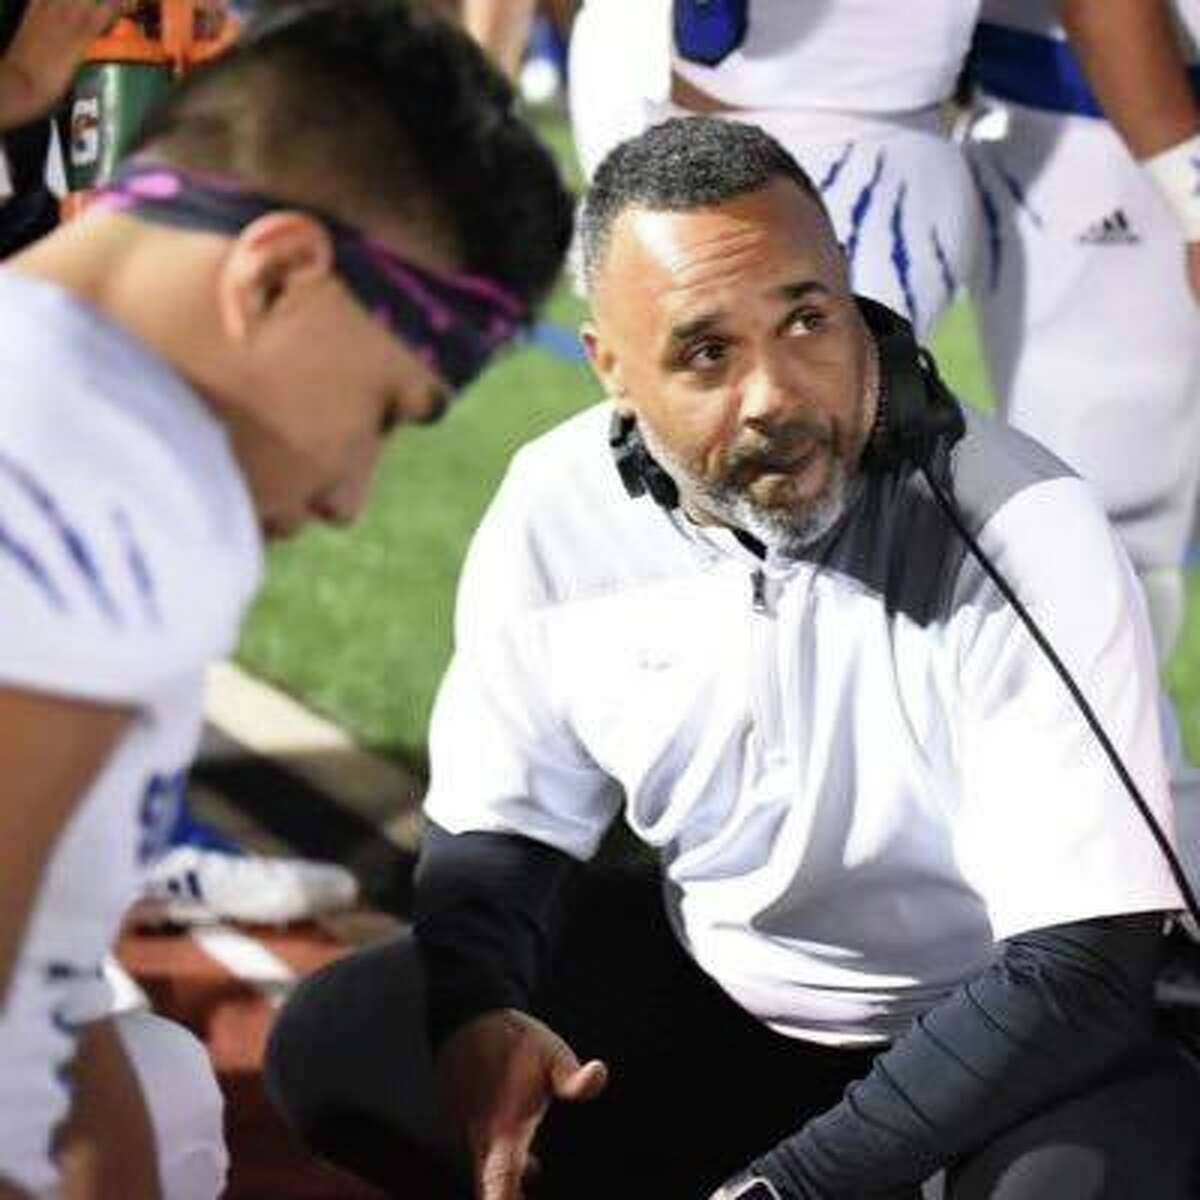 Stevens special teams coordinator Larry Norman has been hired as Brackenridge's new football coach.